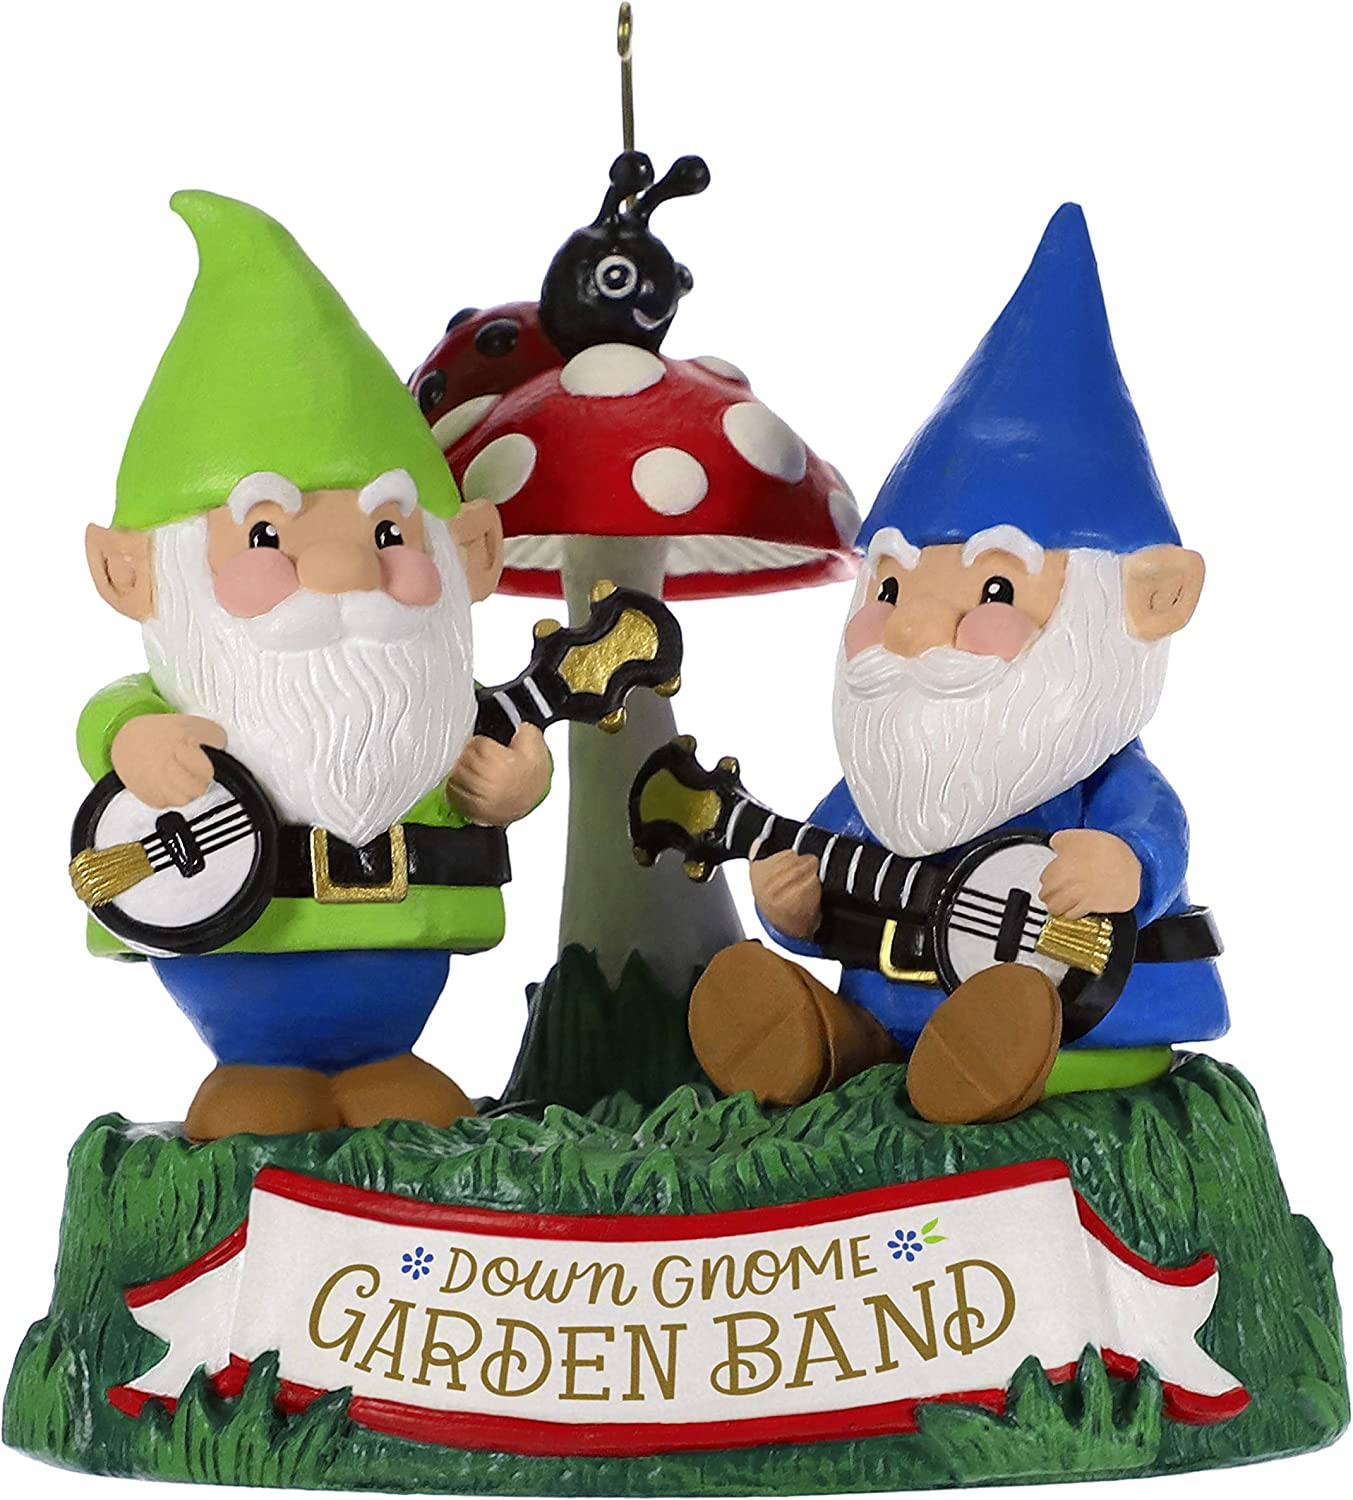 Hallmark Keepsake Christmas Ornament 2019 Year Dated Garden Sound (Plays Duelin' Banjos Song), Dueling Gnomes